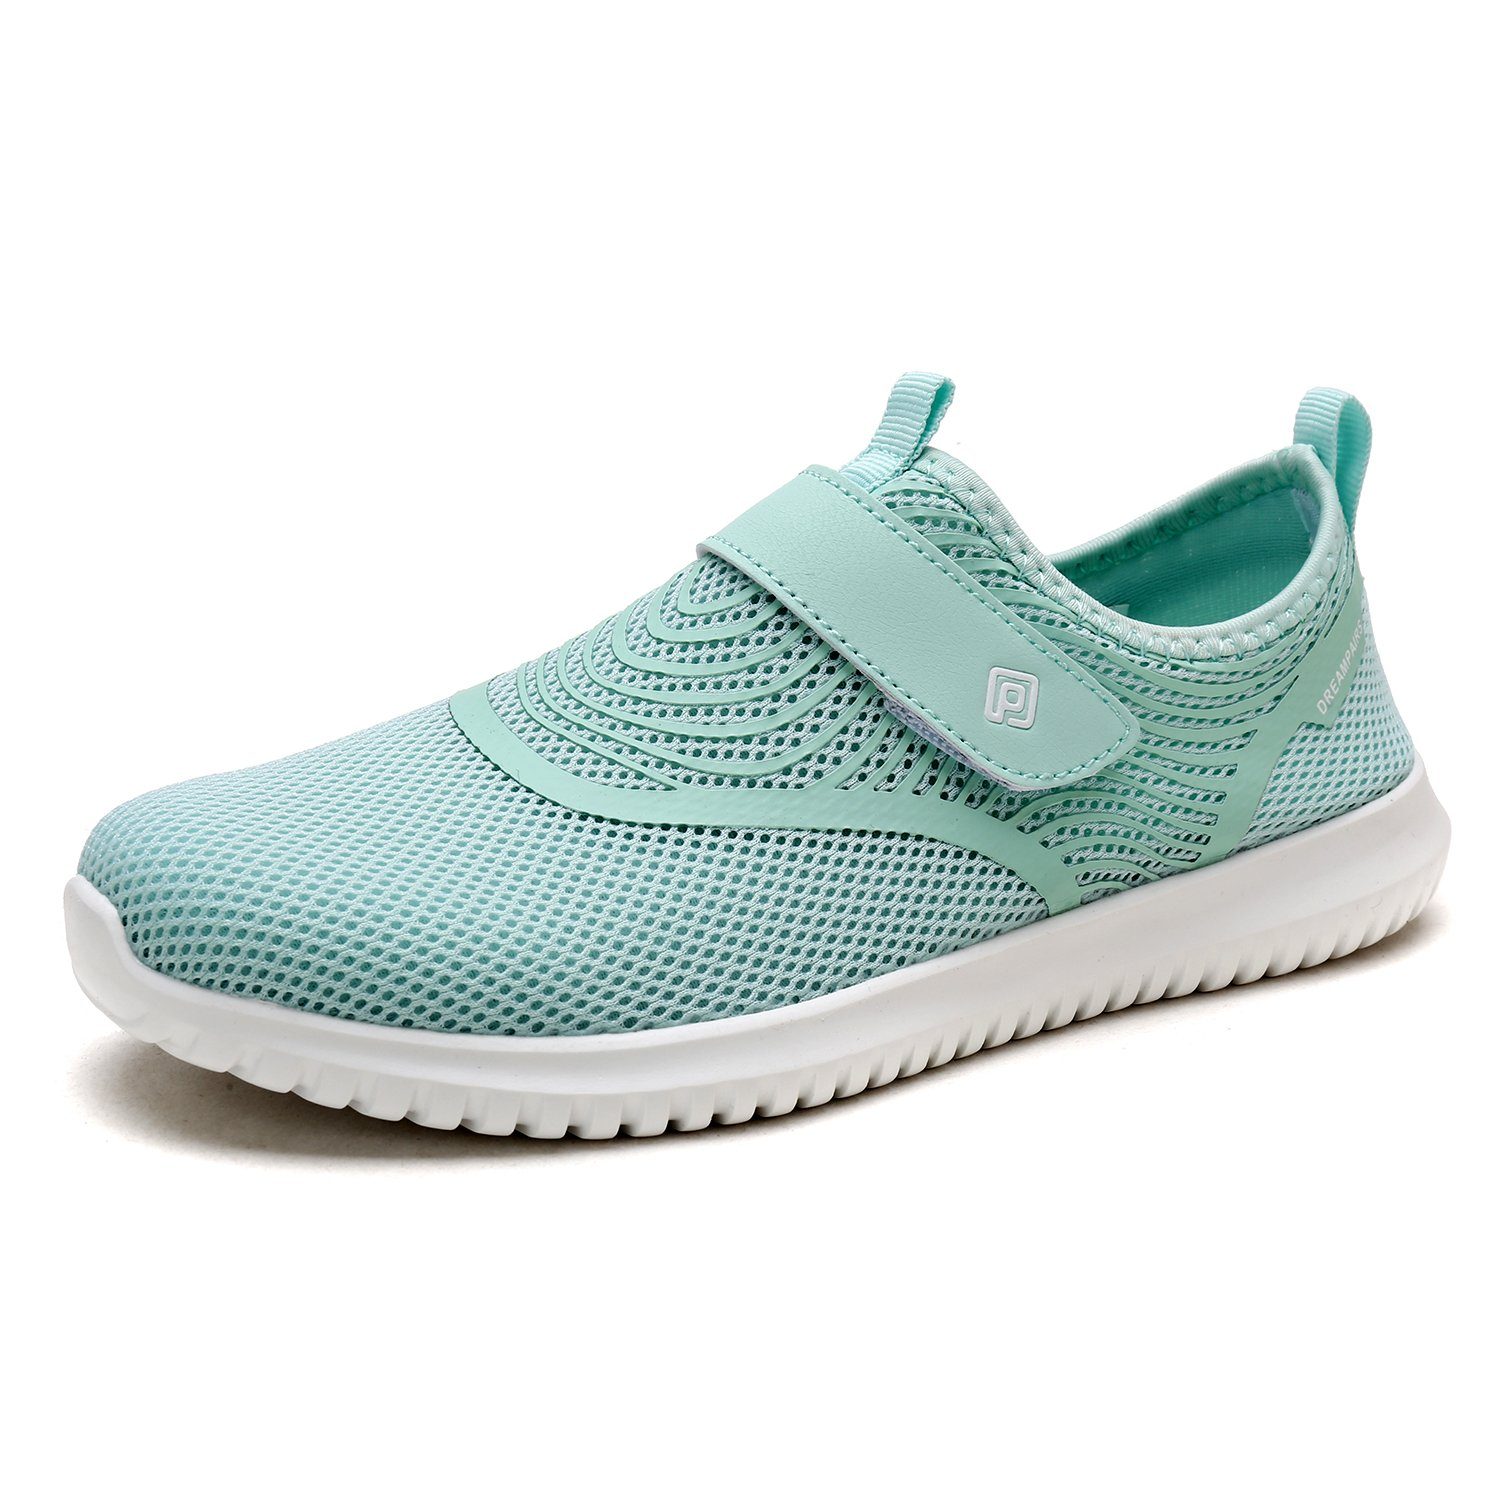 DREAM PAIRS Quick-Dry Water Shoes Sports Walking Casual Sneakers for Women B07887ZJ1H 8.5 M US|Lt.green